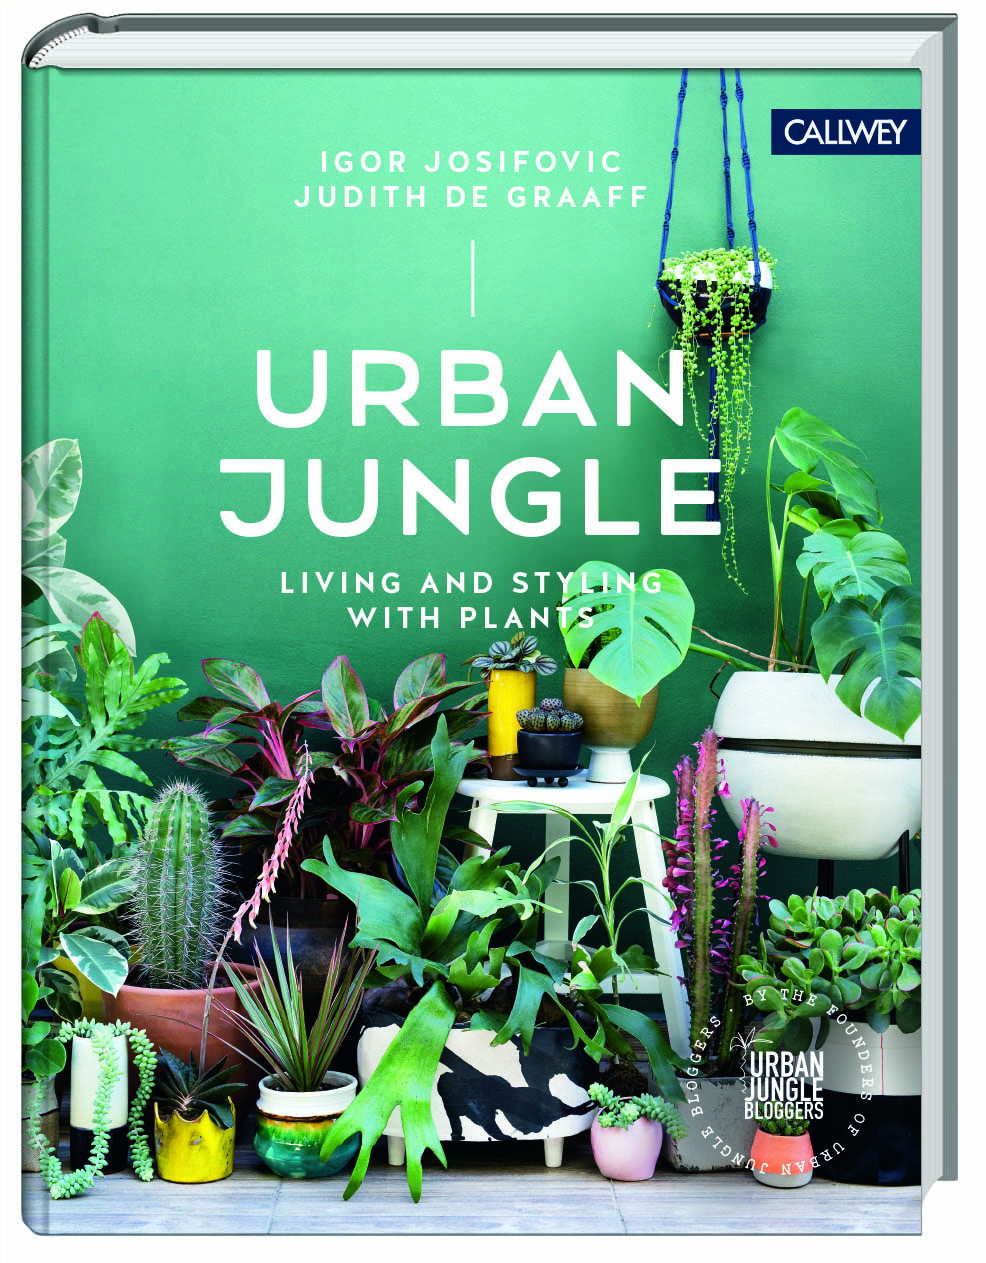 books-urban-jungle-callwey-green-plants